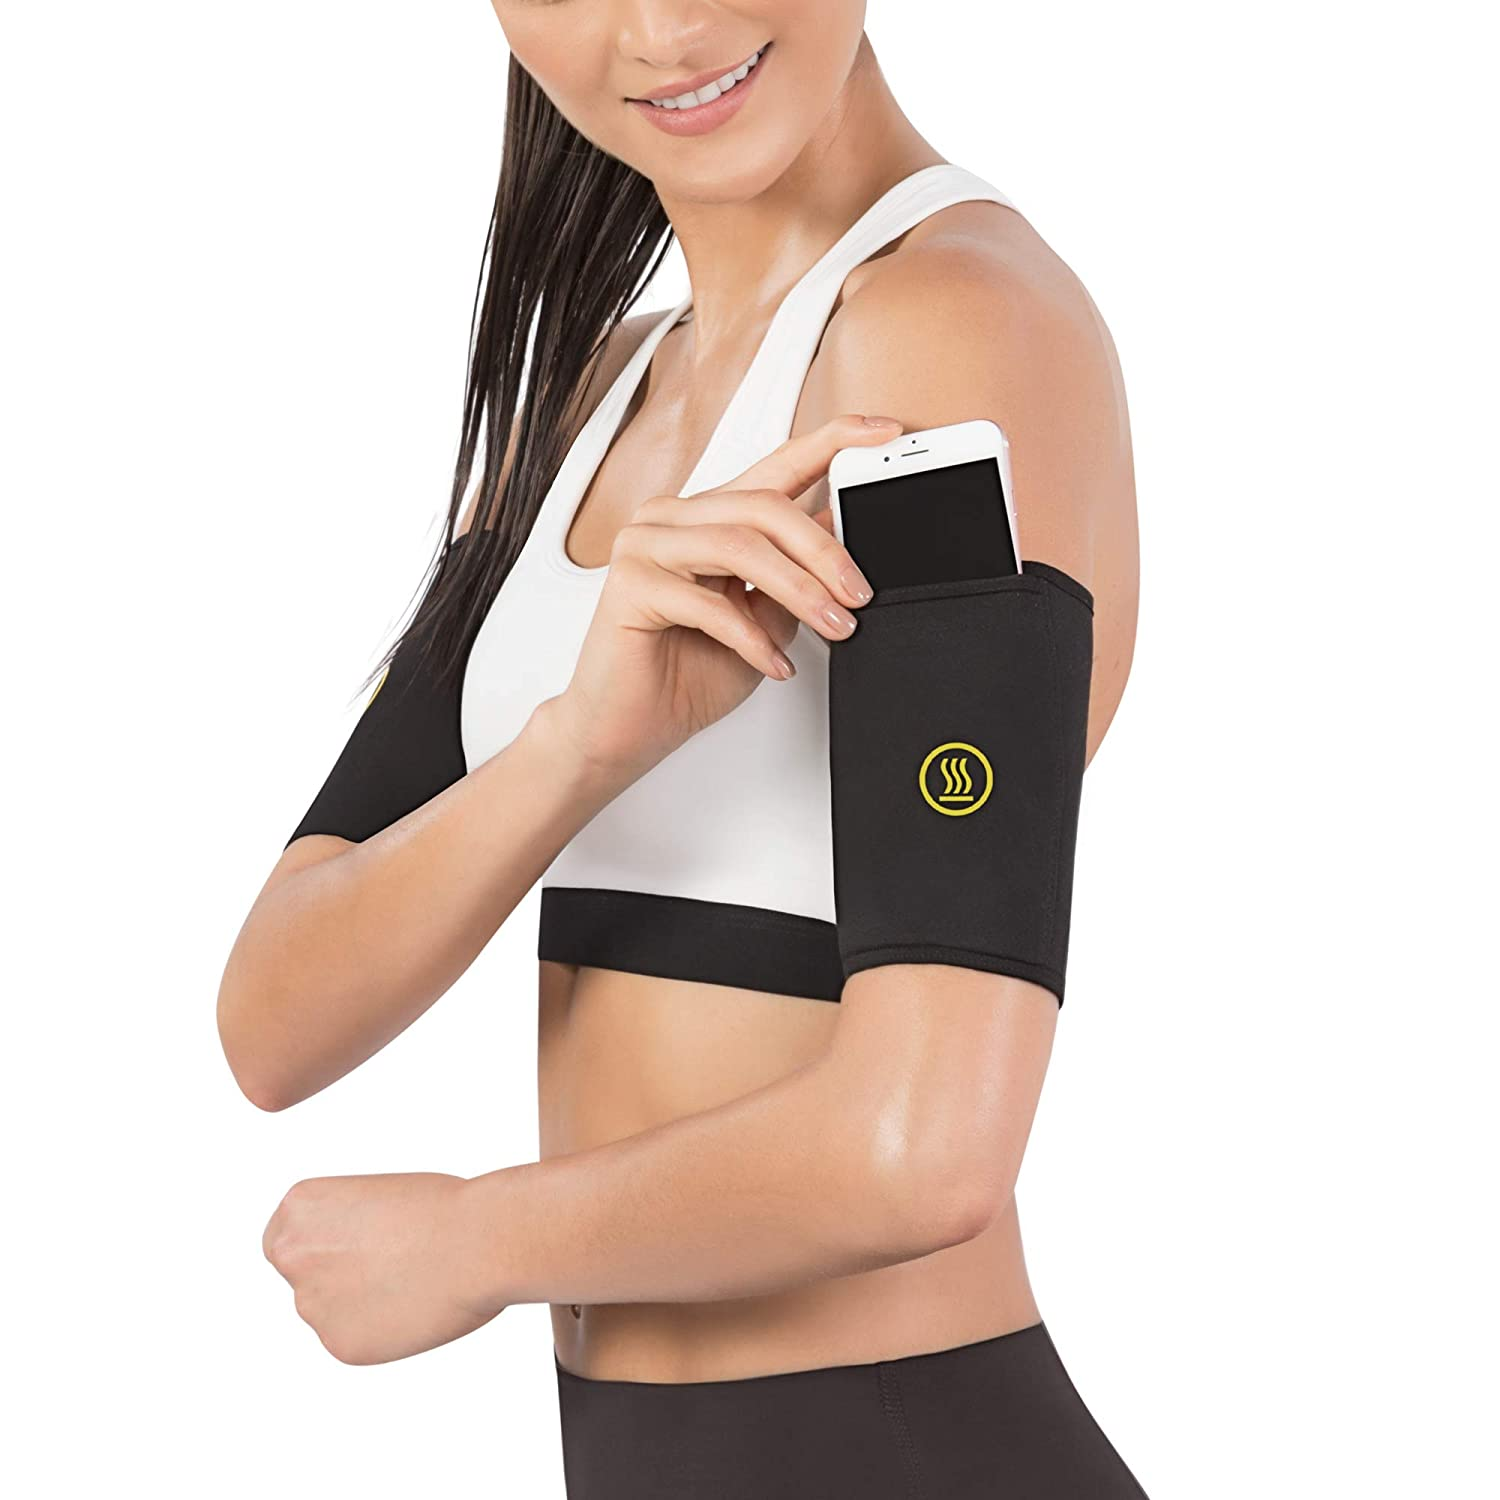 f8abfde083e5d Amazon.com   Hot Shapers Hot Arms Sleeves - Seamless Arm Trimmers with  Phone Pocket for Running   Sports   Outdoors